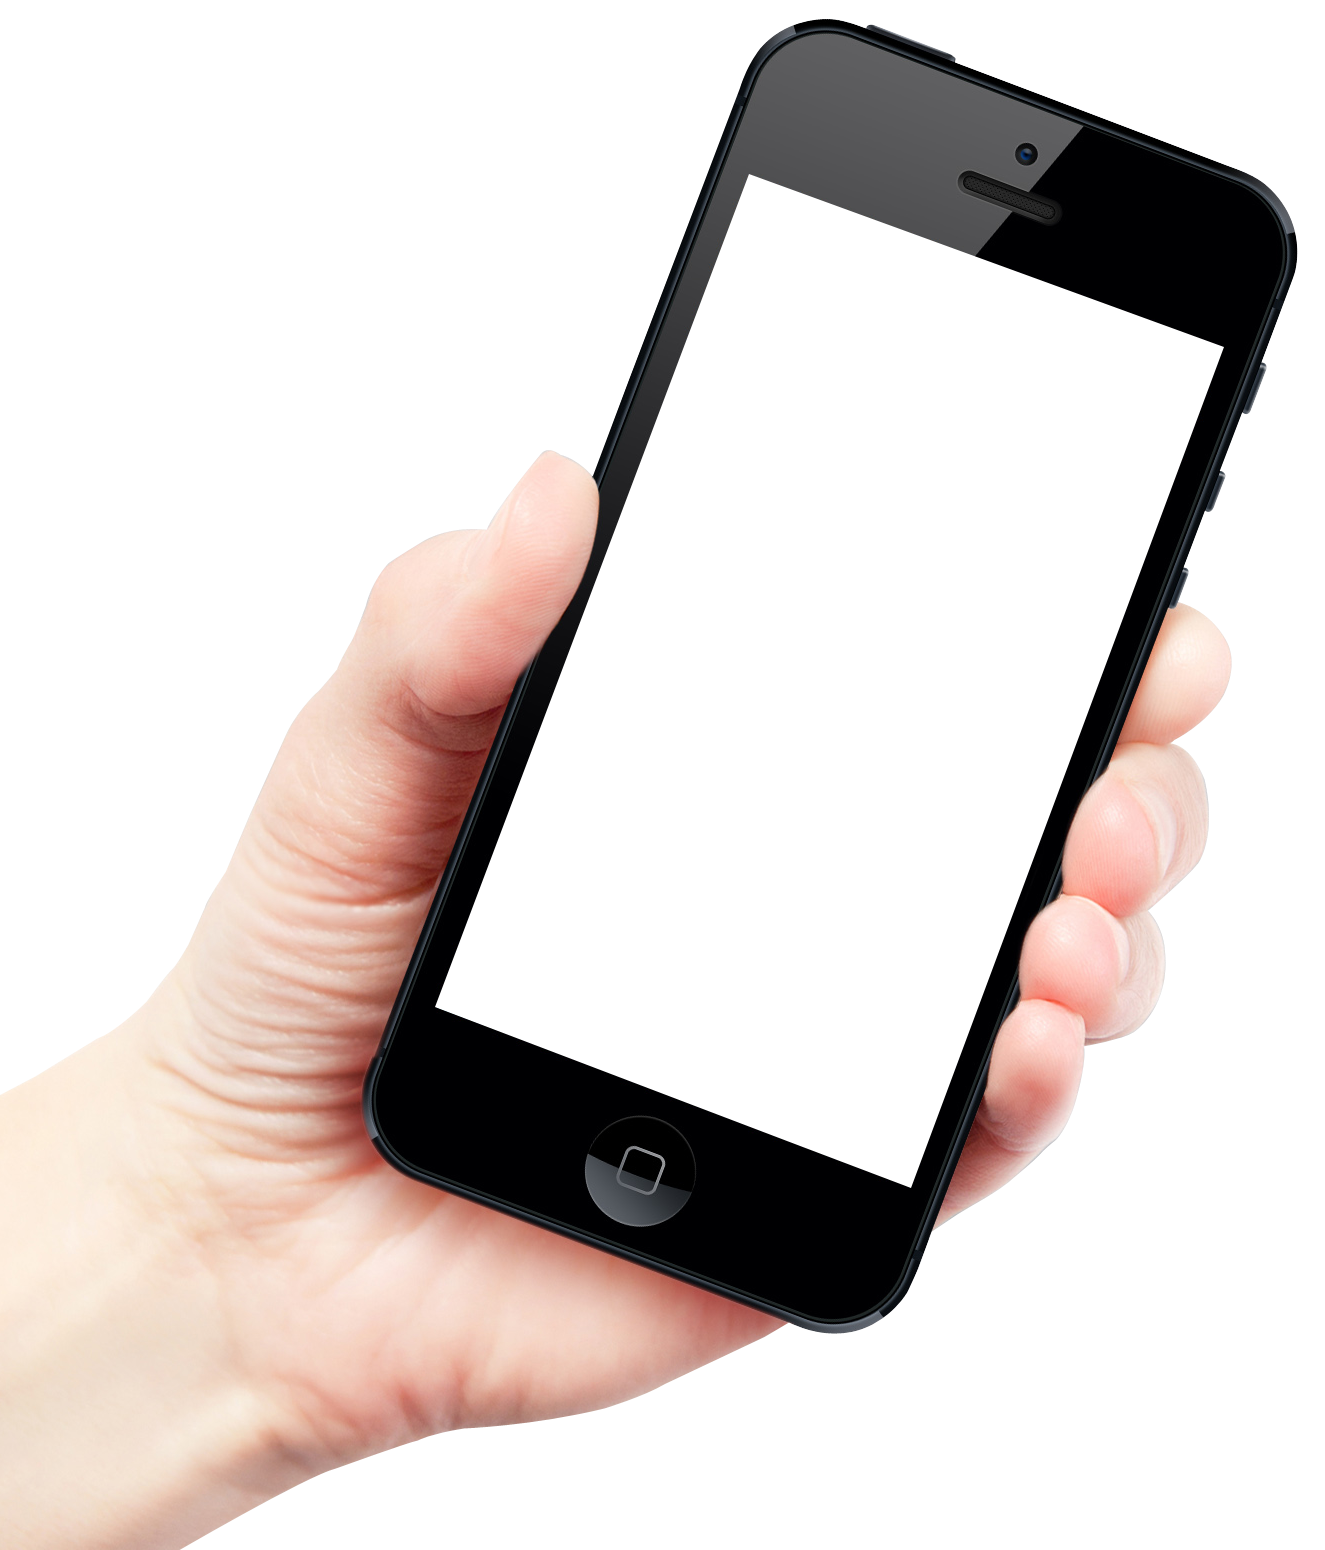 svg freeuse stock Hand Holding Smartphone Apple iPhone PNG Image